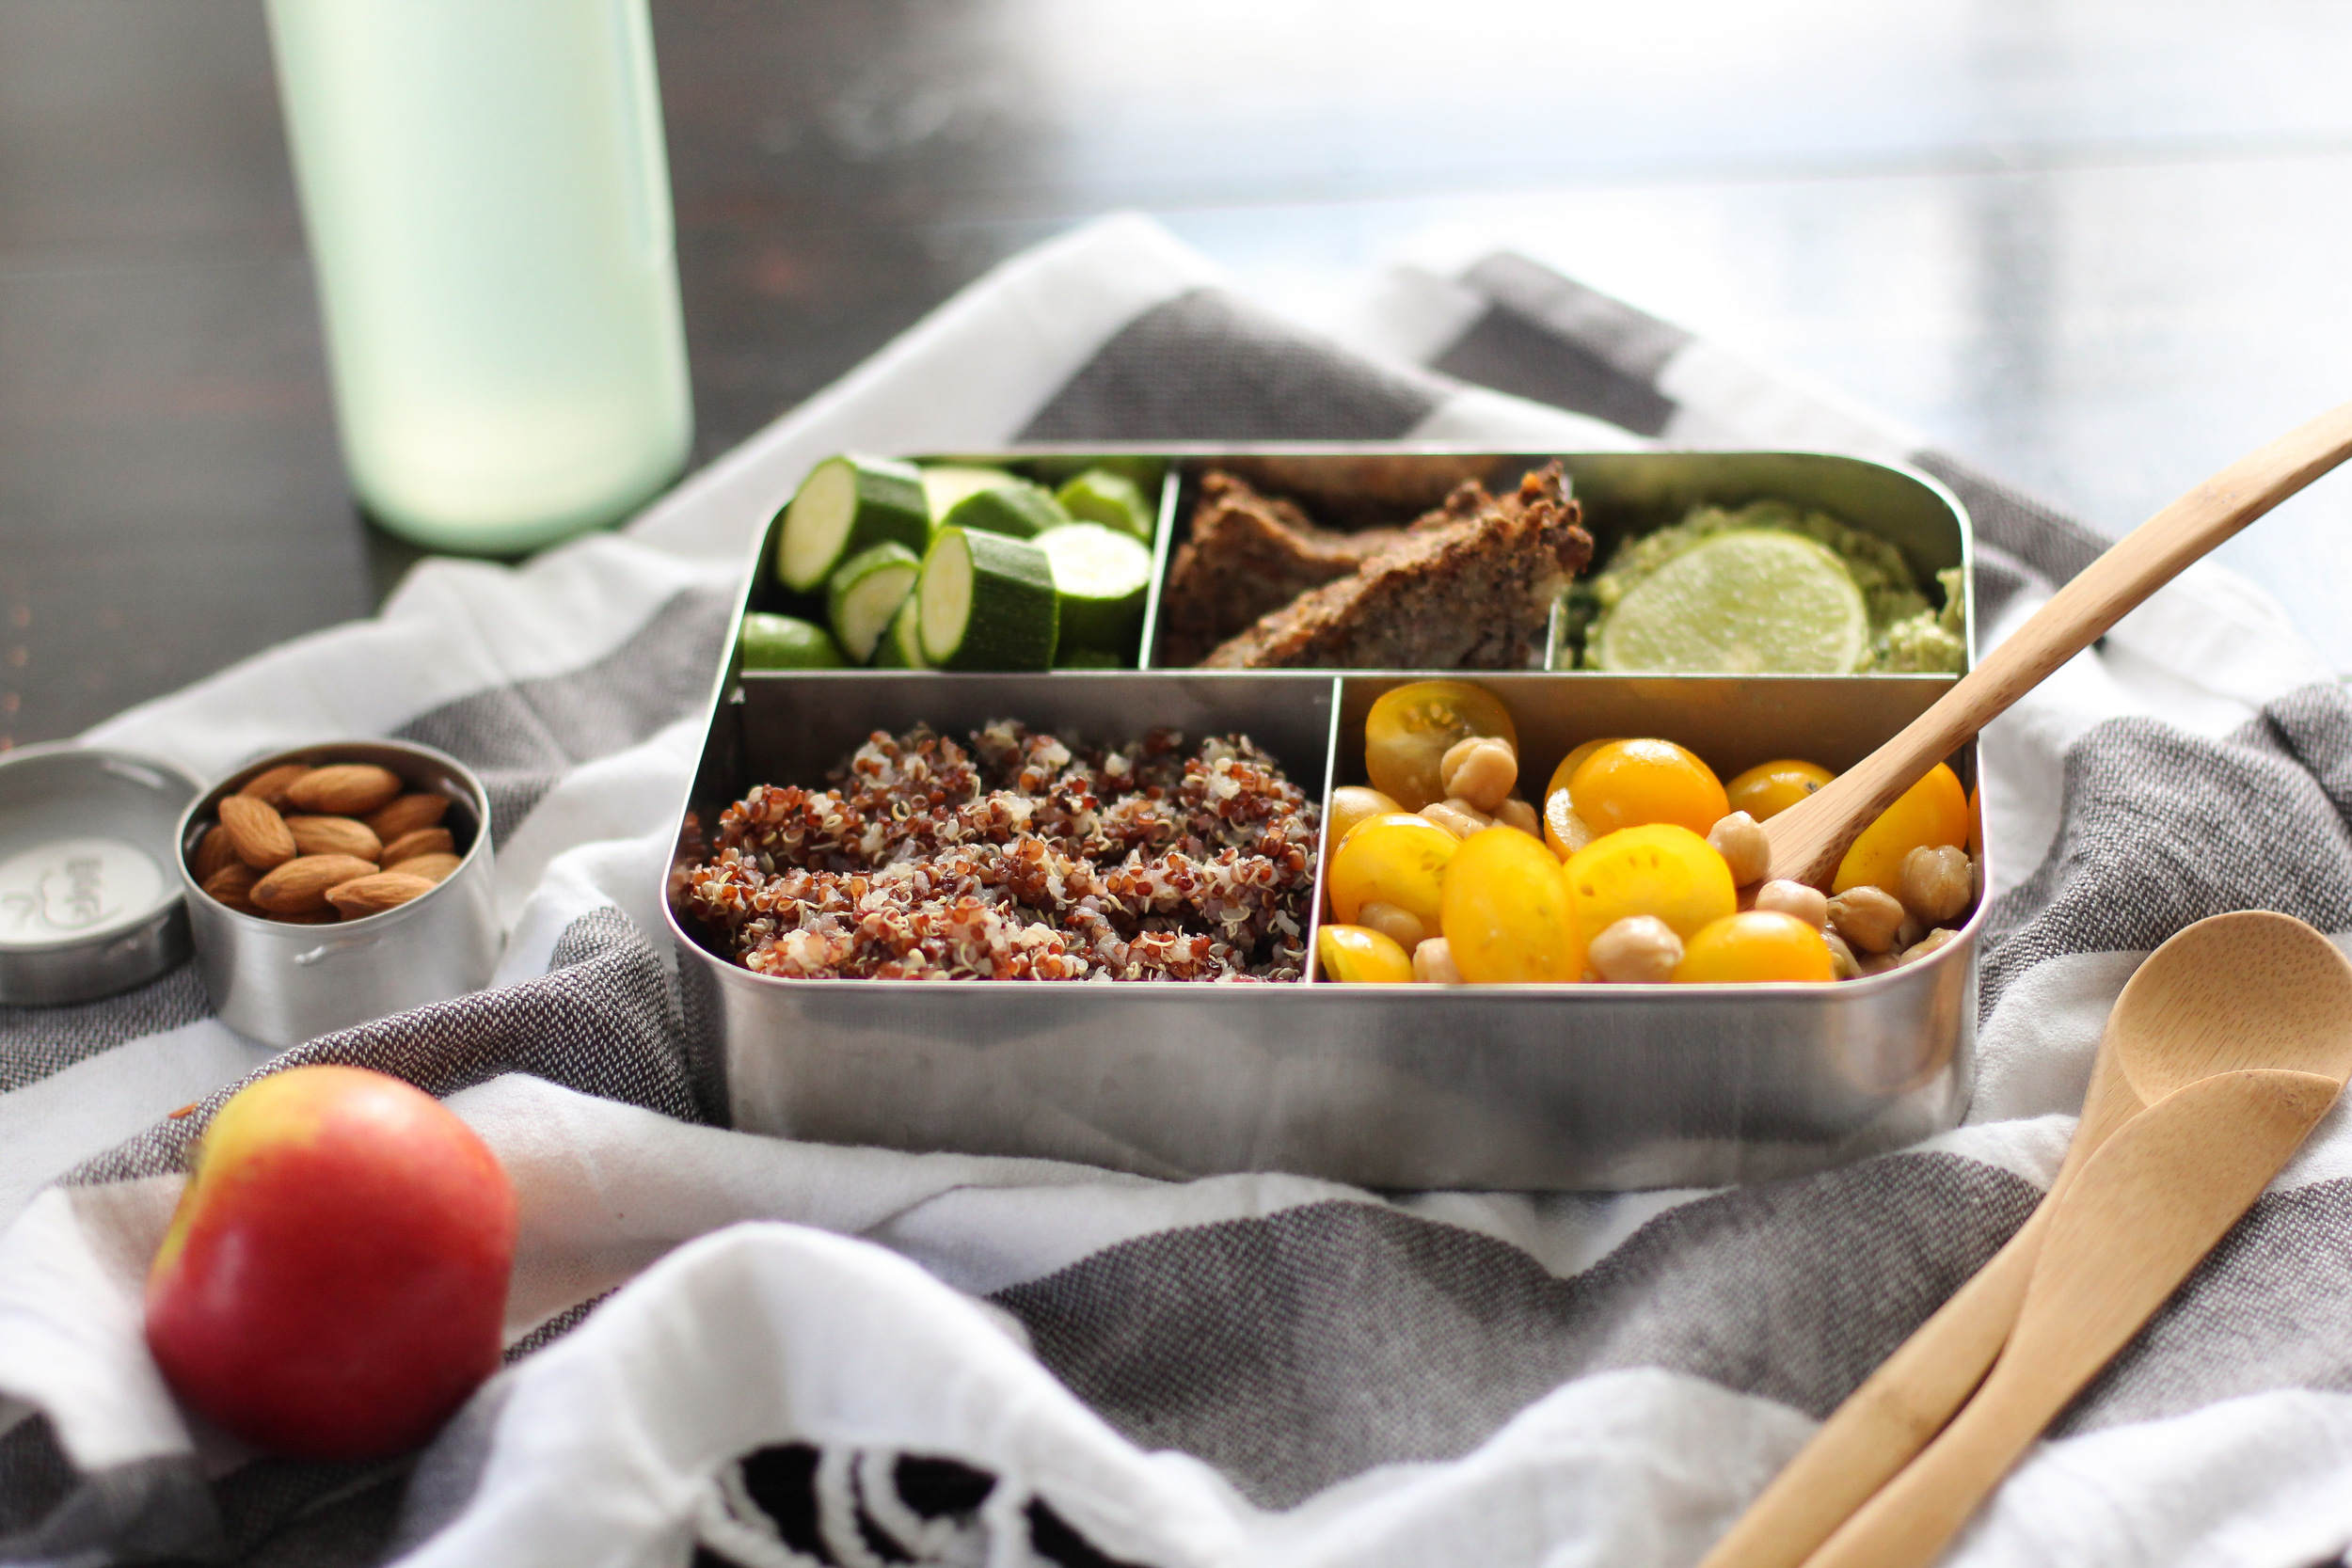 Click on the image to read Hardeep's strategies for packing healthy lunches!  Photo credit:image source: http://nutritionstripped.com/how-to-build-a-healthy-lunch-box/